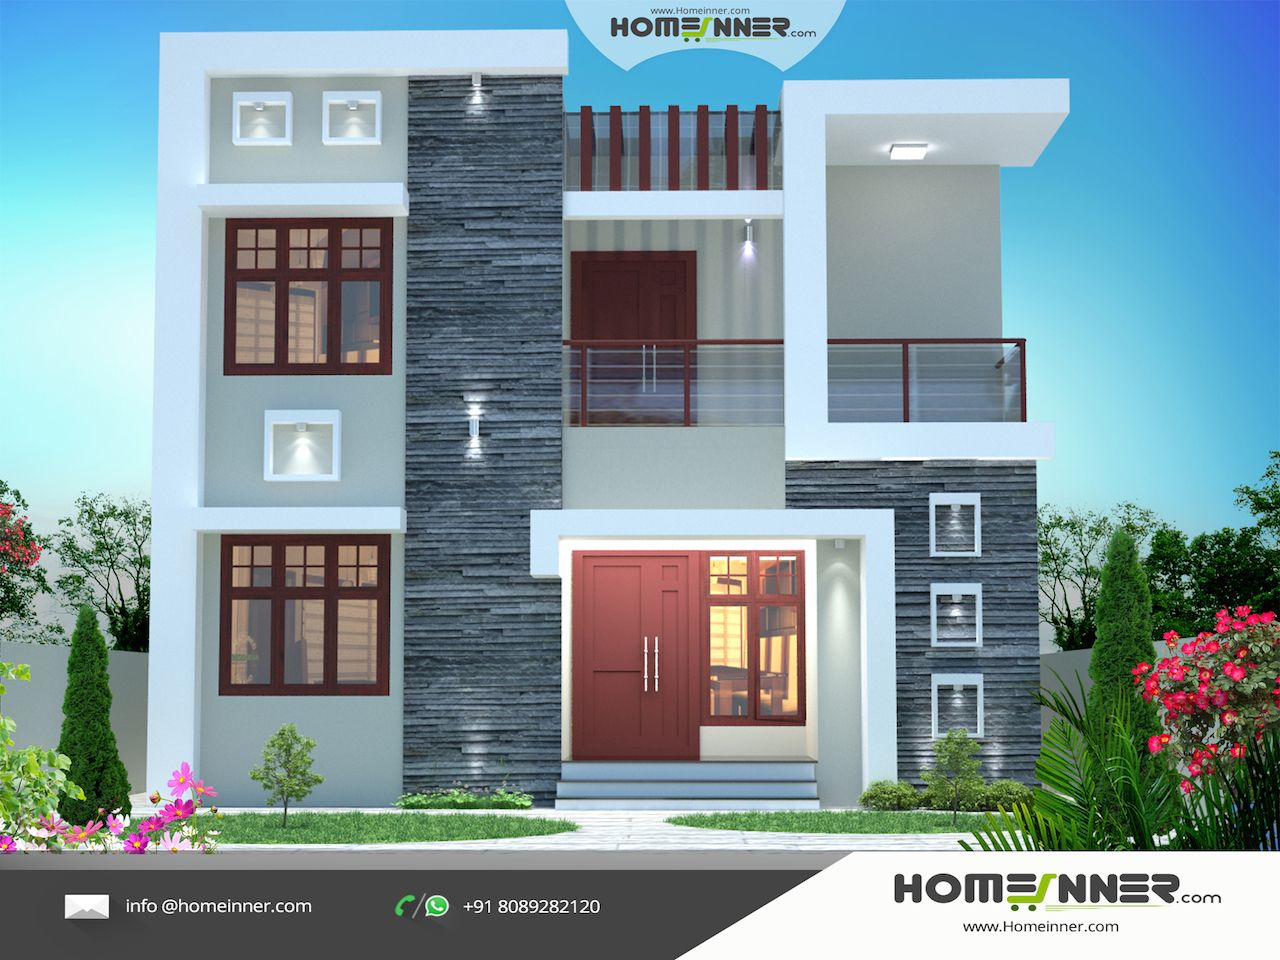 House About the Home design Here is